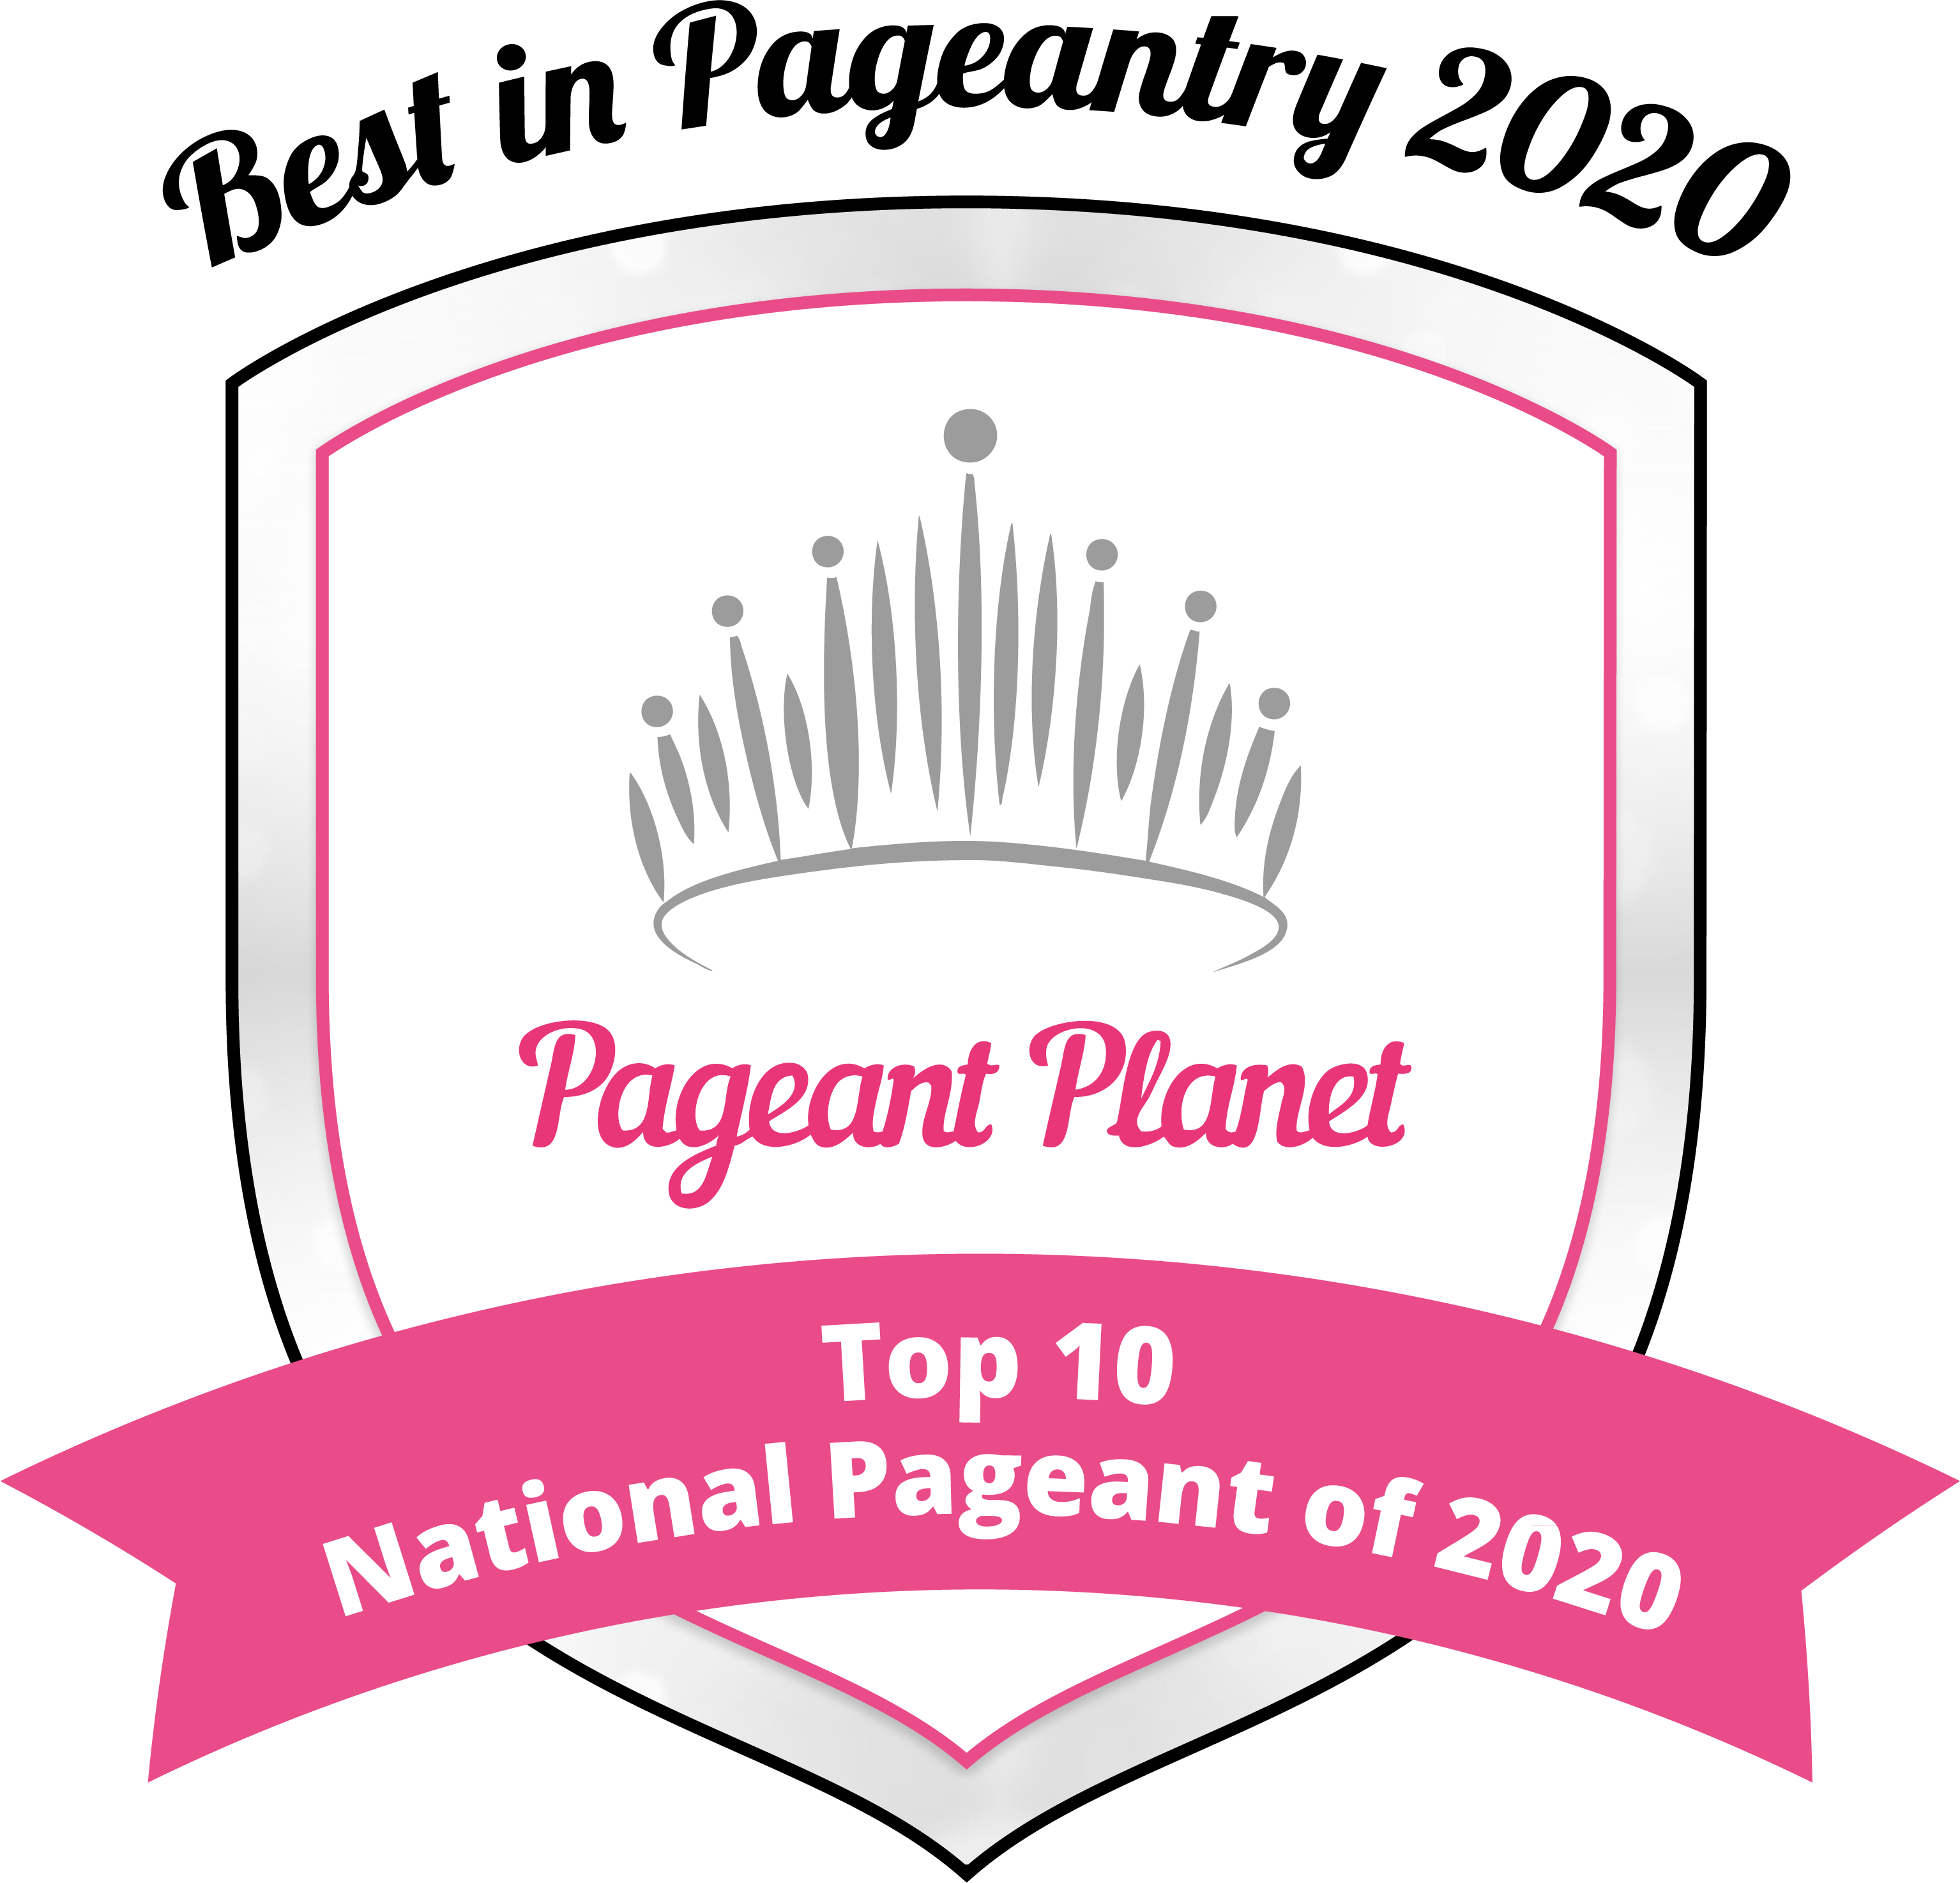 Top 10 National Pageant of 2020